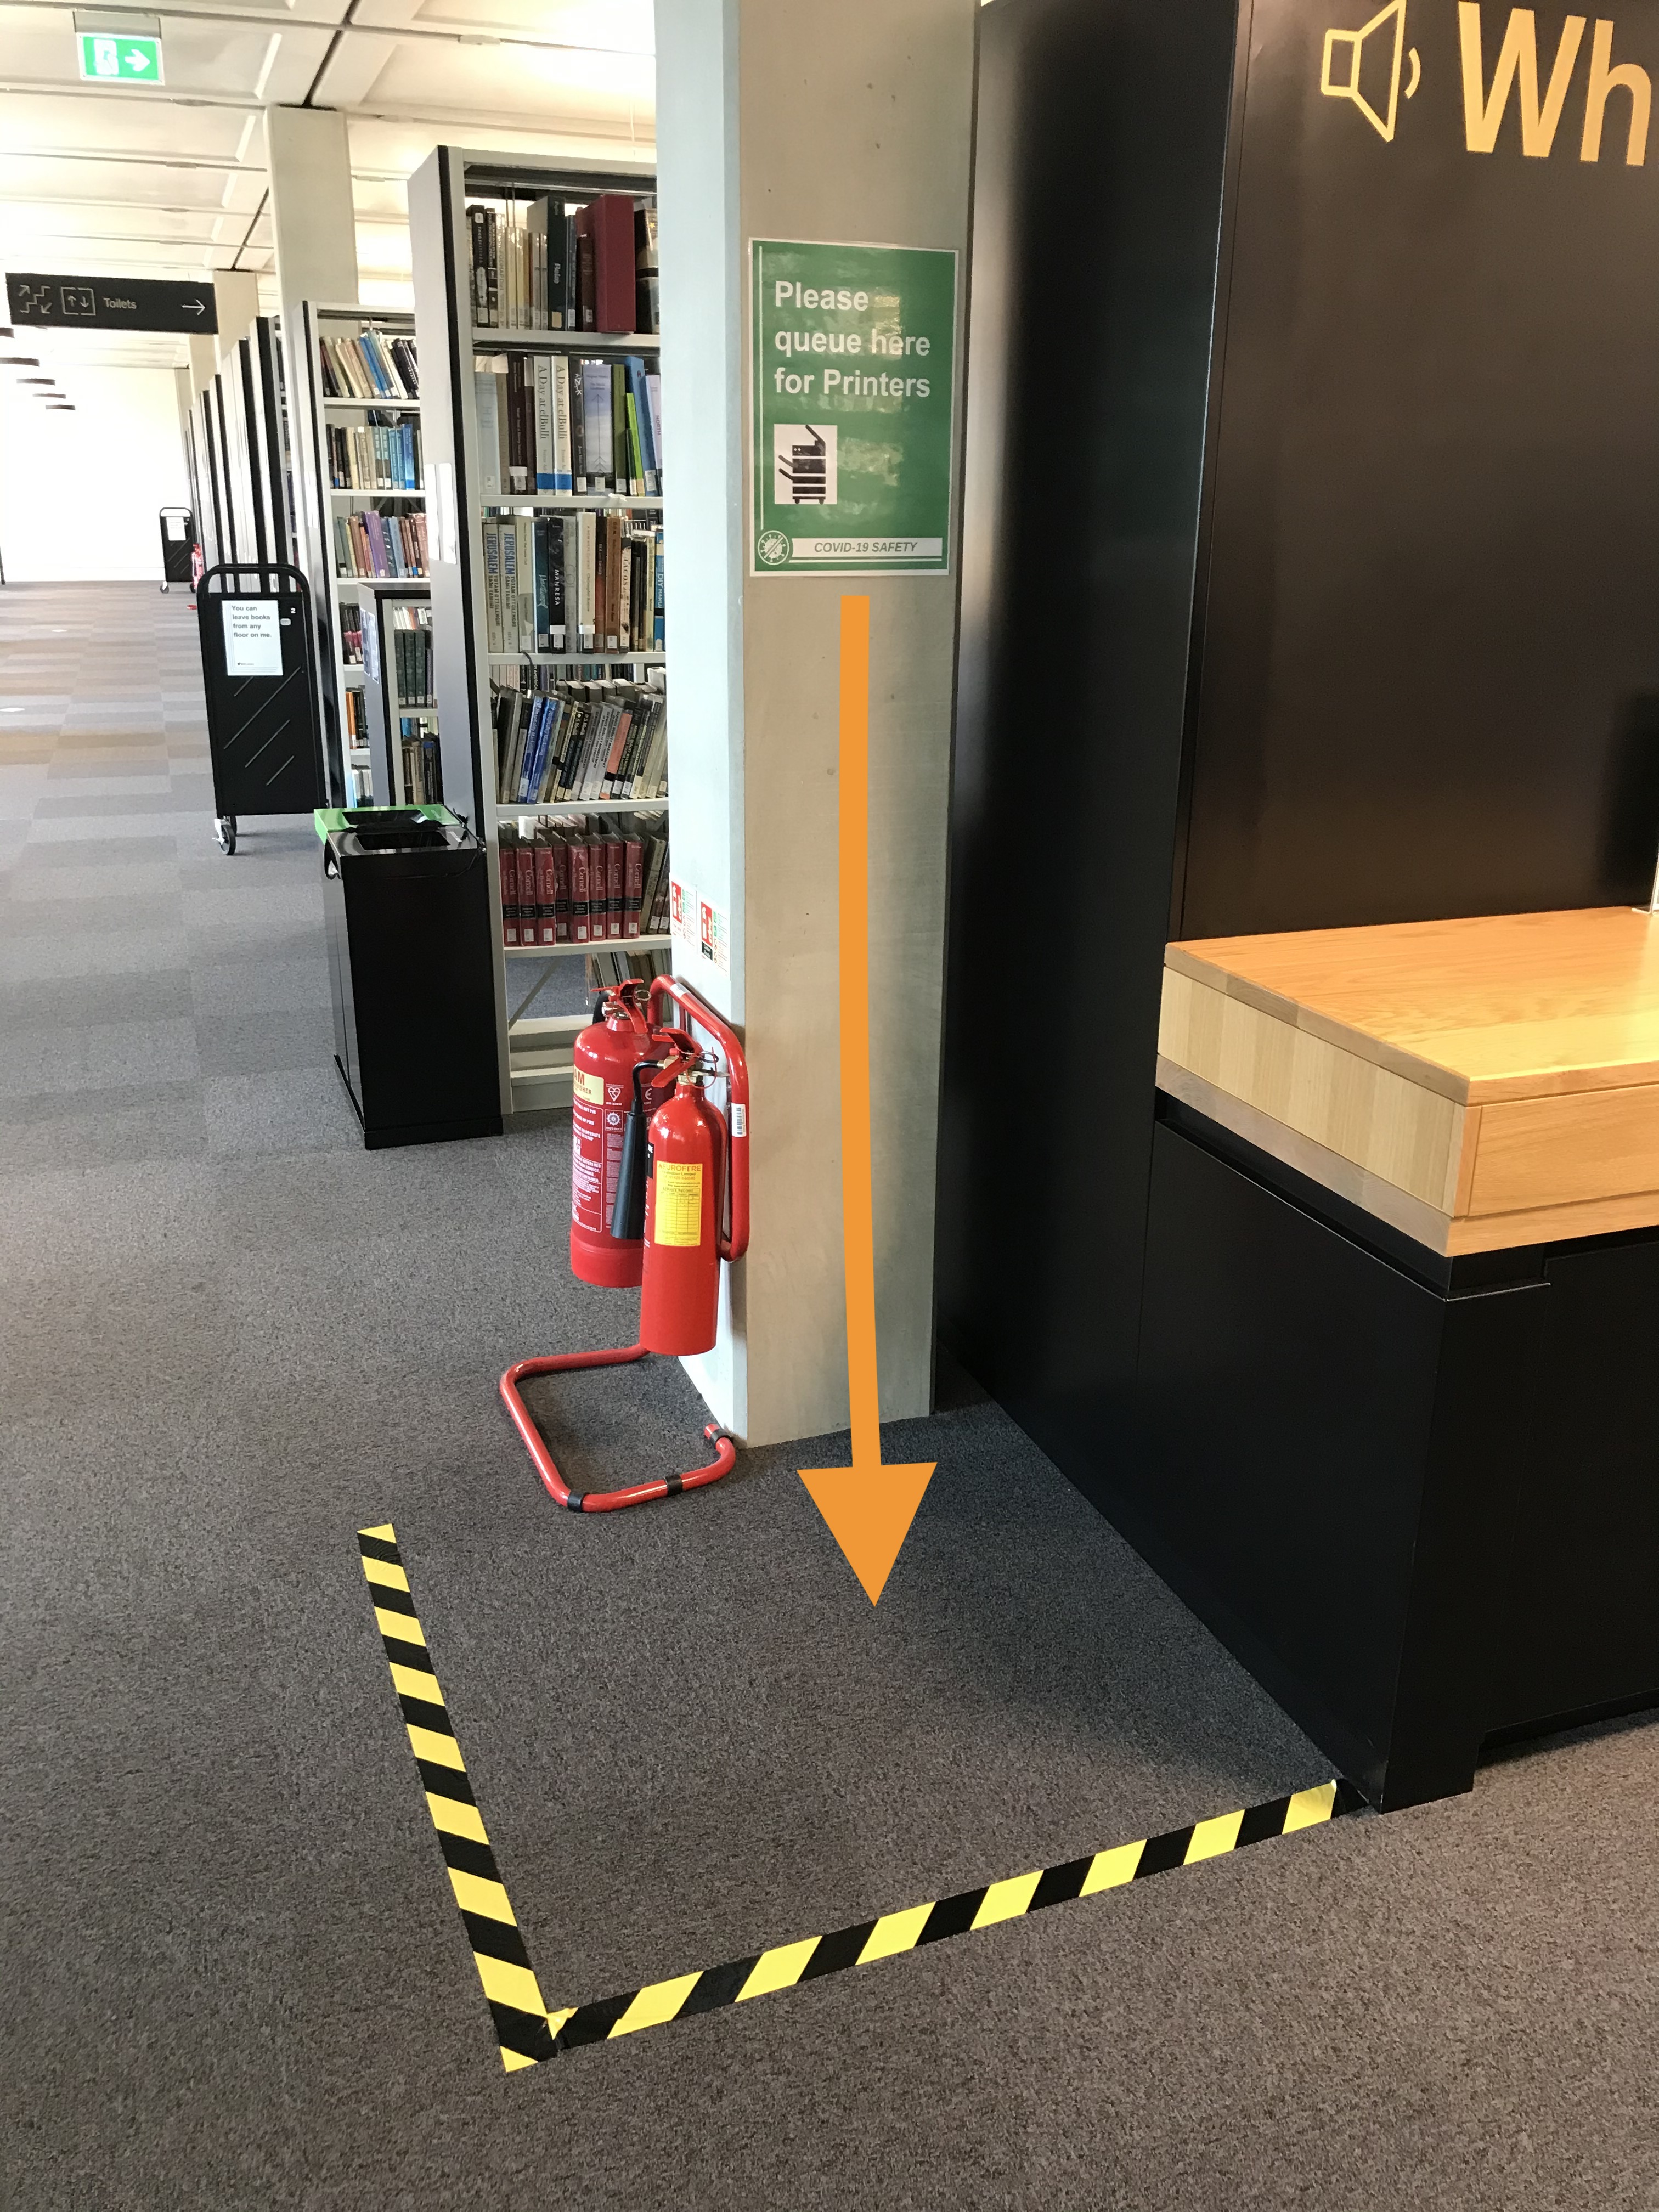 yellow taped section of the floor near the printer to show where to queue